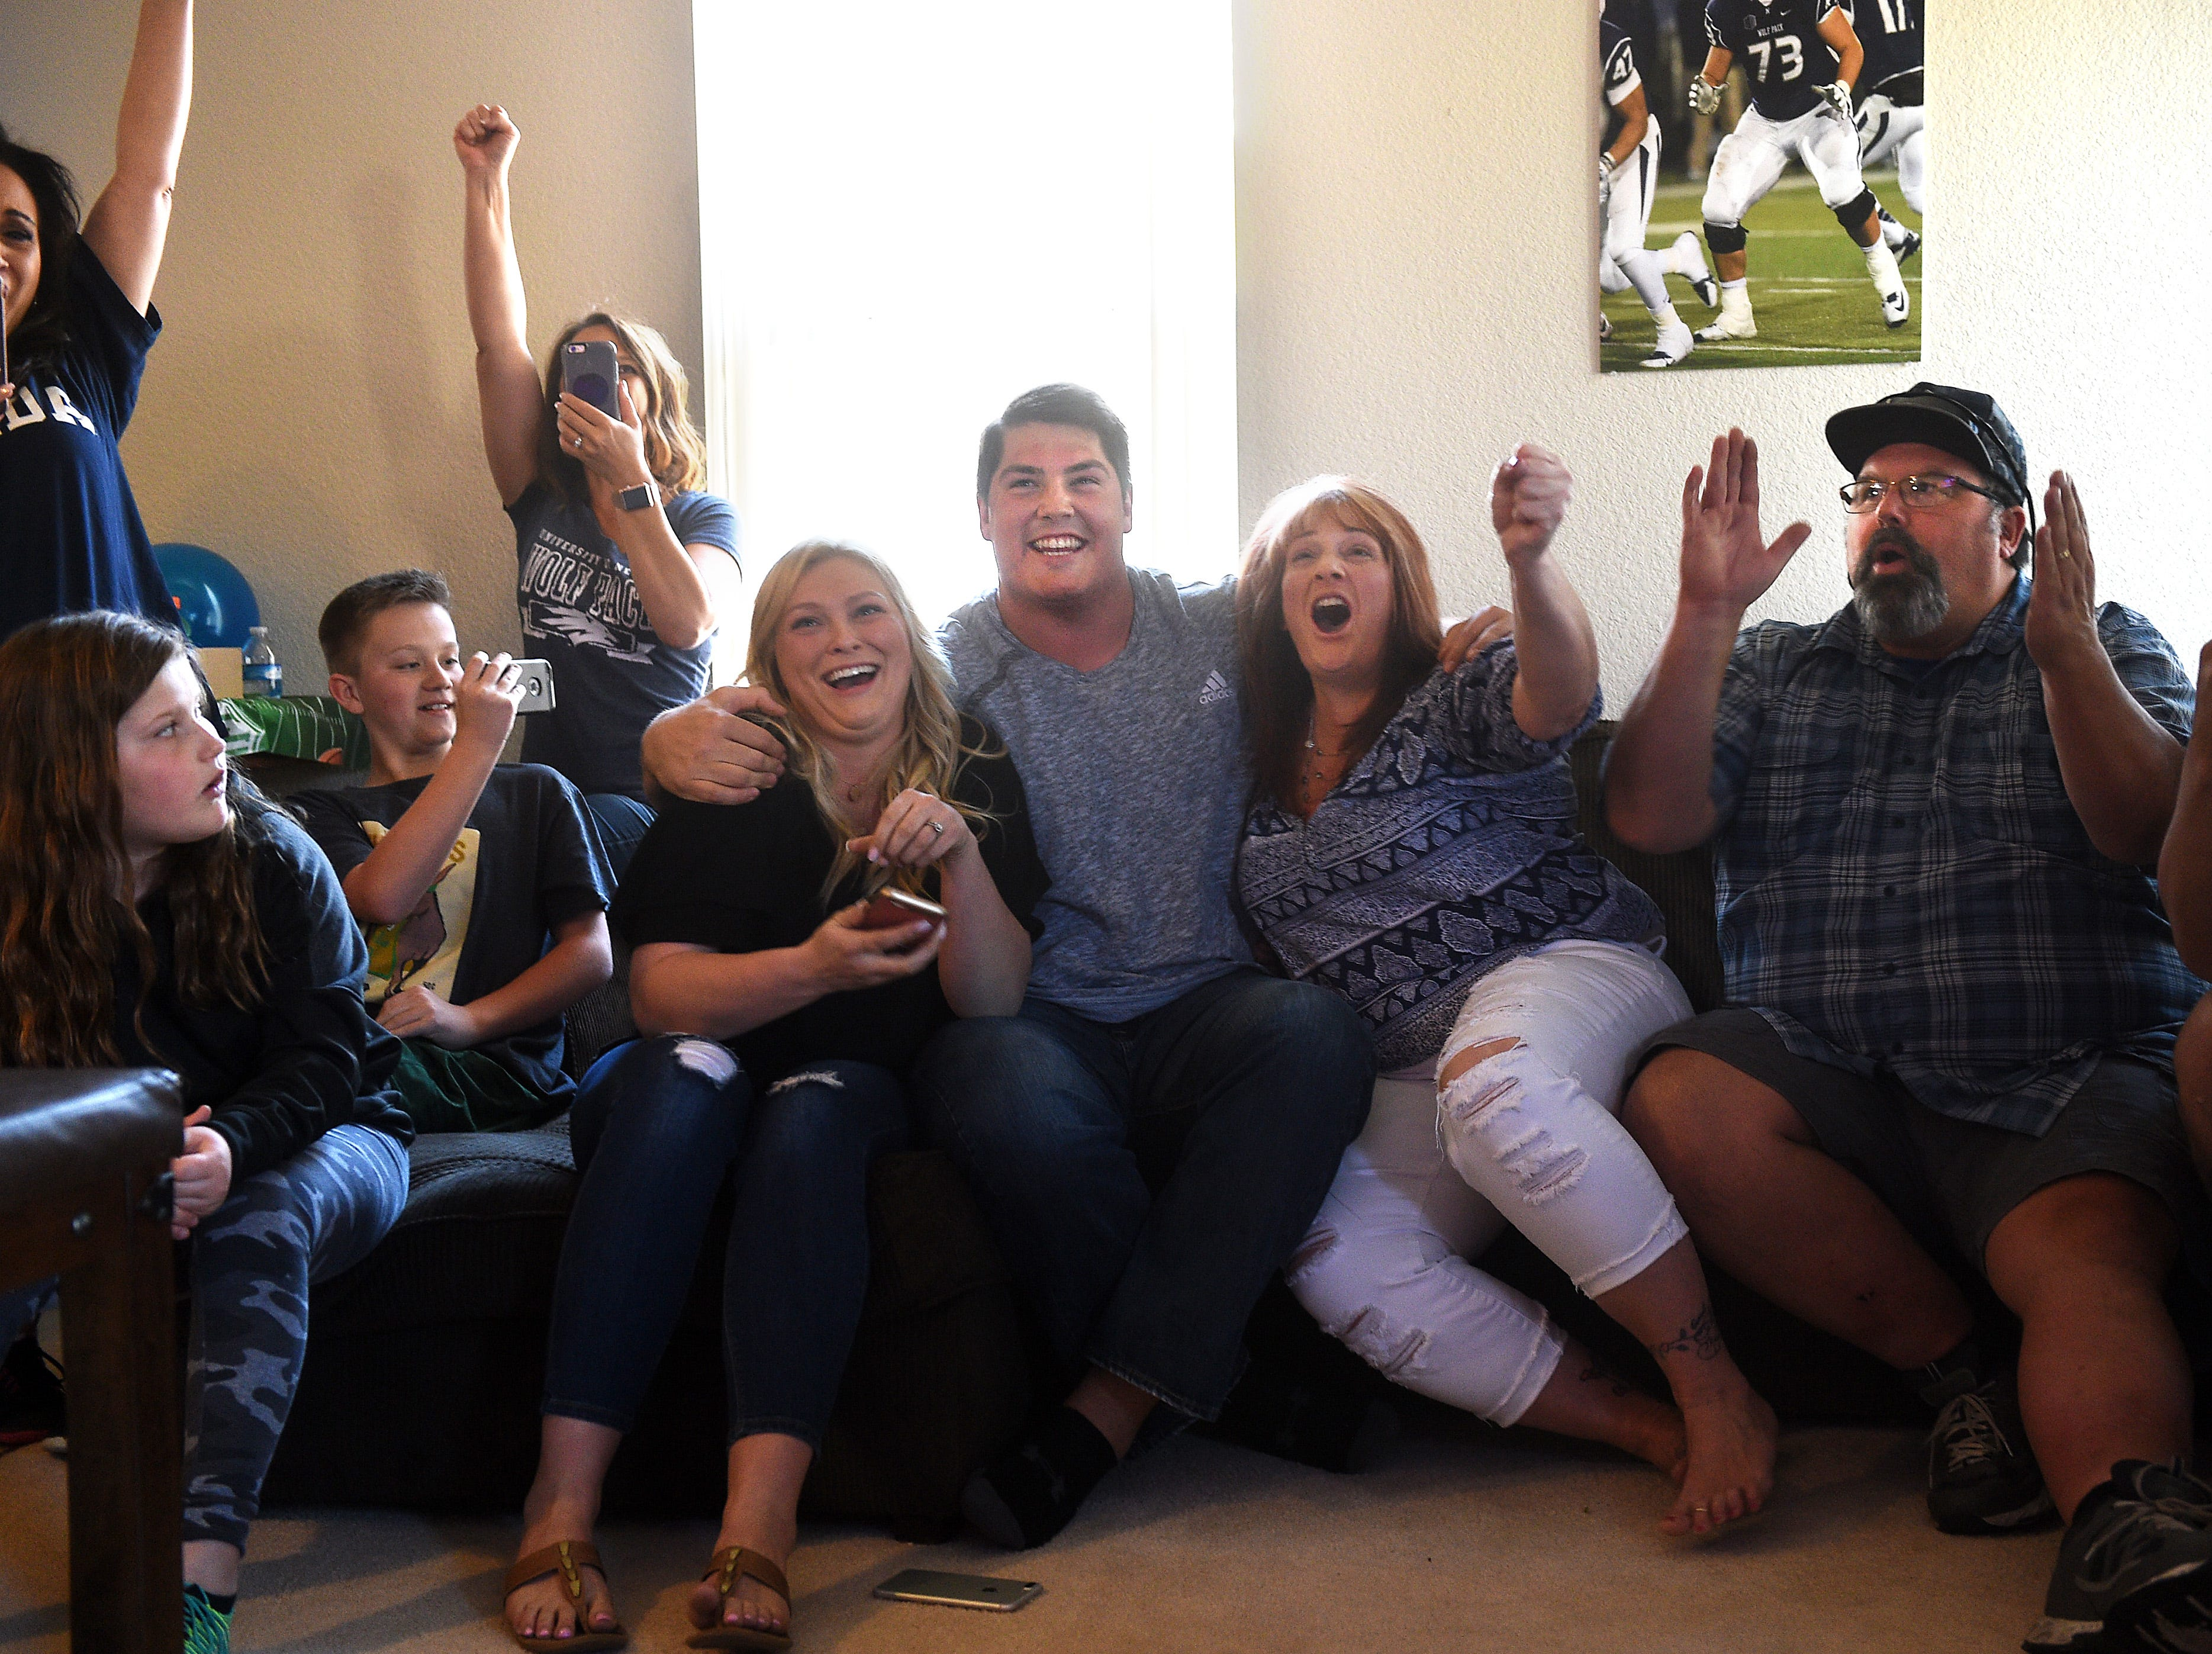 Austin Corbett, middle, and his family and friends react to the announcement that the Cleveland Browns selected him as the first pick of the second round of the NFL draft during a party at their home in Sparks on April 27, 2018. Surrounding Corbett are his wife Madison, left, and his mother Melissa and father Theron, on the right.